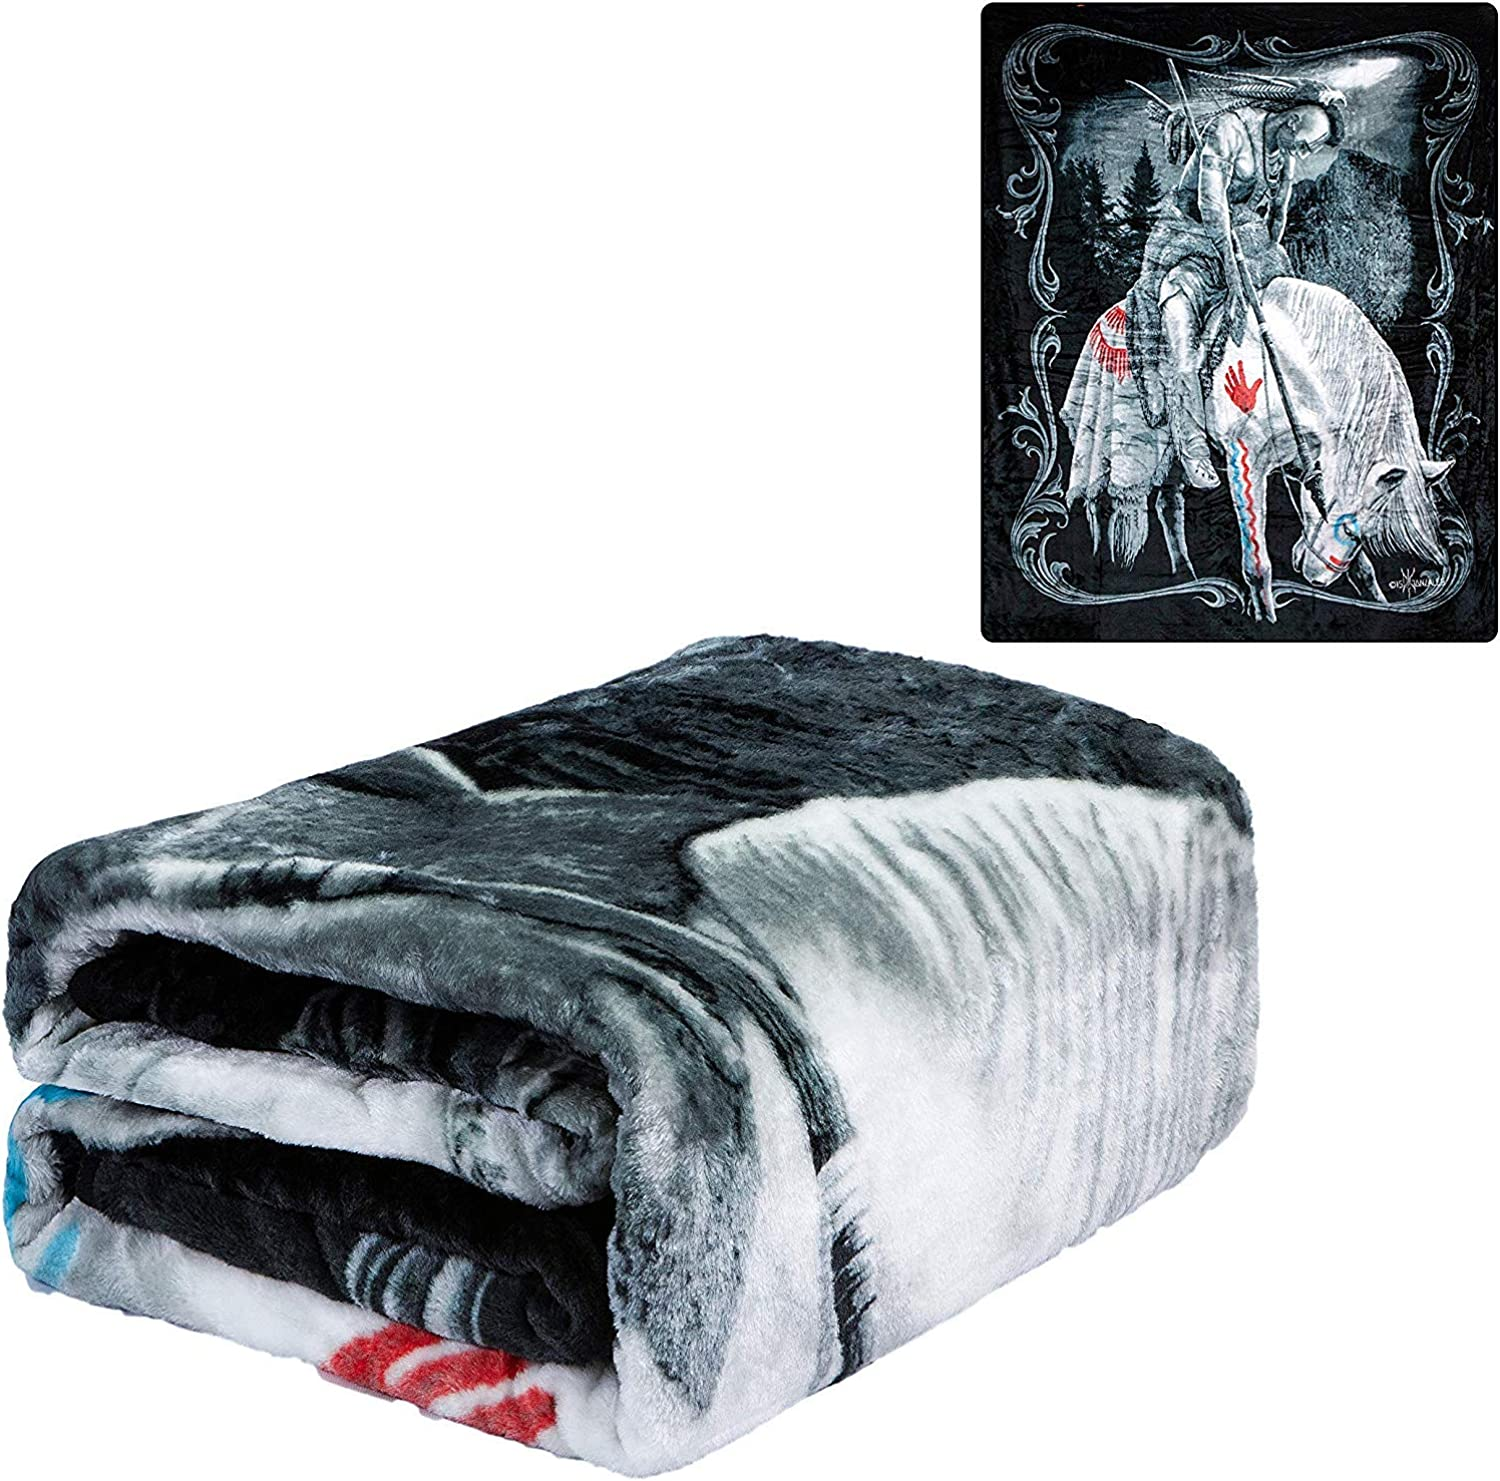 DGA End of Trails Signature Collection Queen Soft Plush Blanket, 79x95 inches